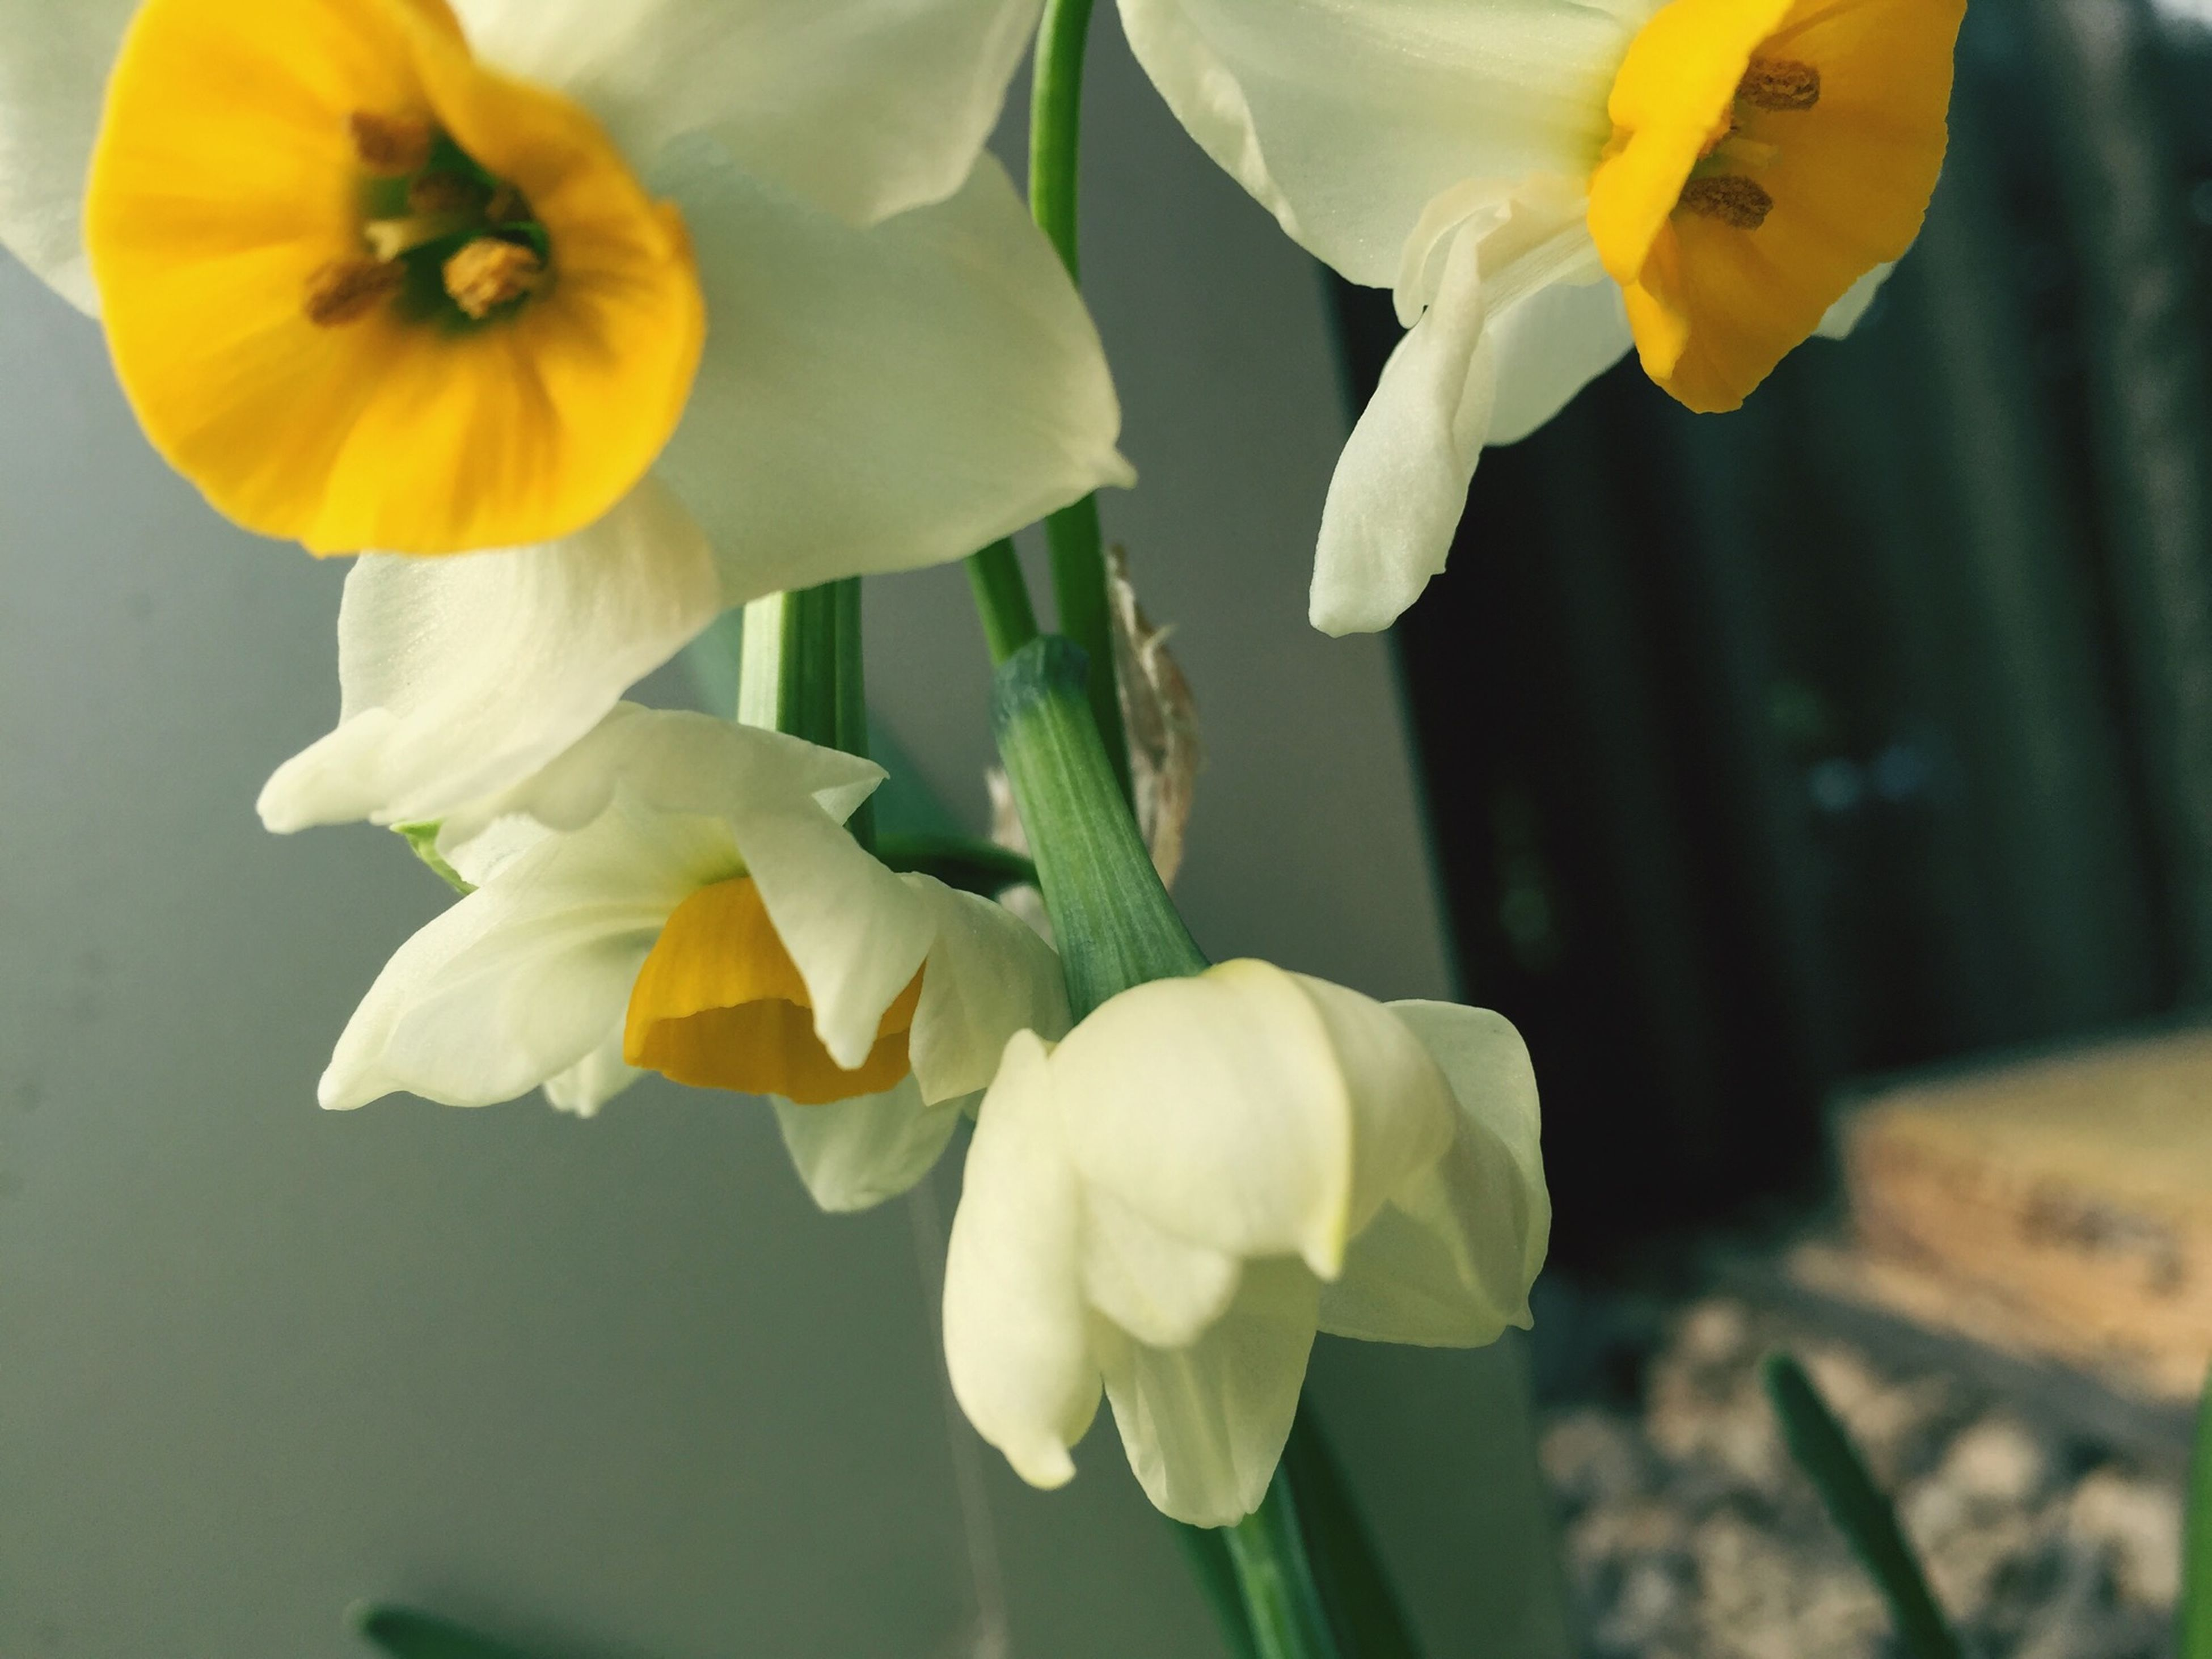 flower, petal, freshness, fragility, flower head, yellow, beauty in nature, growth, close-up, blooming, white color, focus on foreground, nature, plant, daffodil, stem, in bloom, pollen, blossom, no people